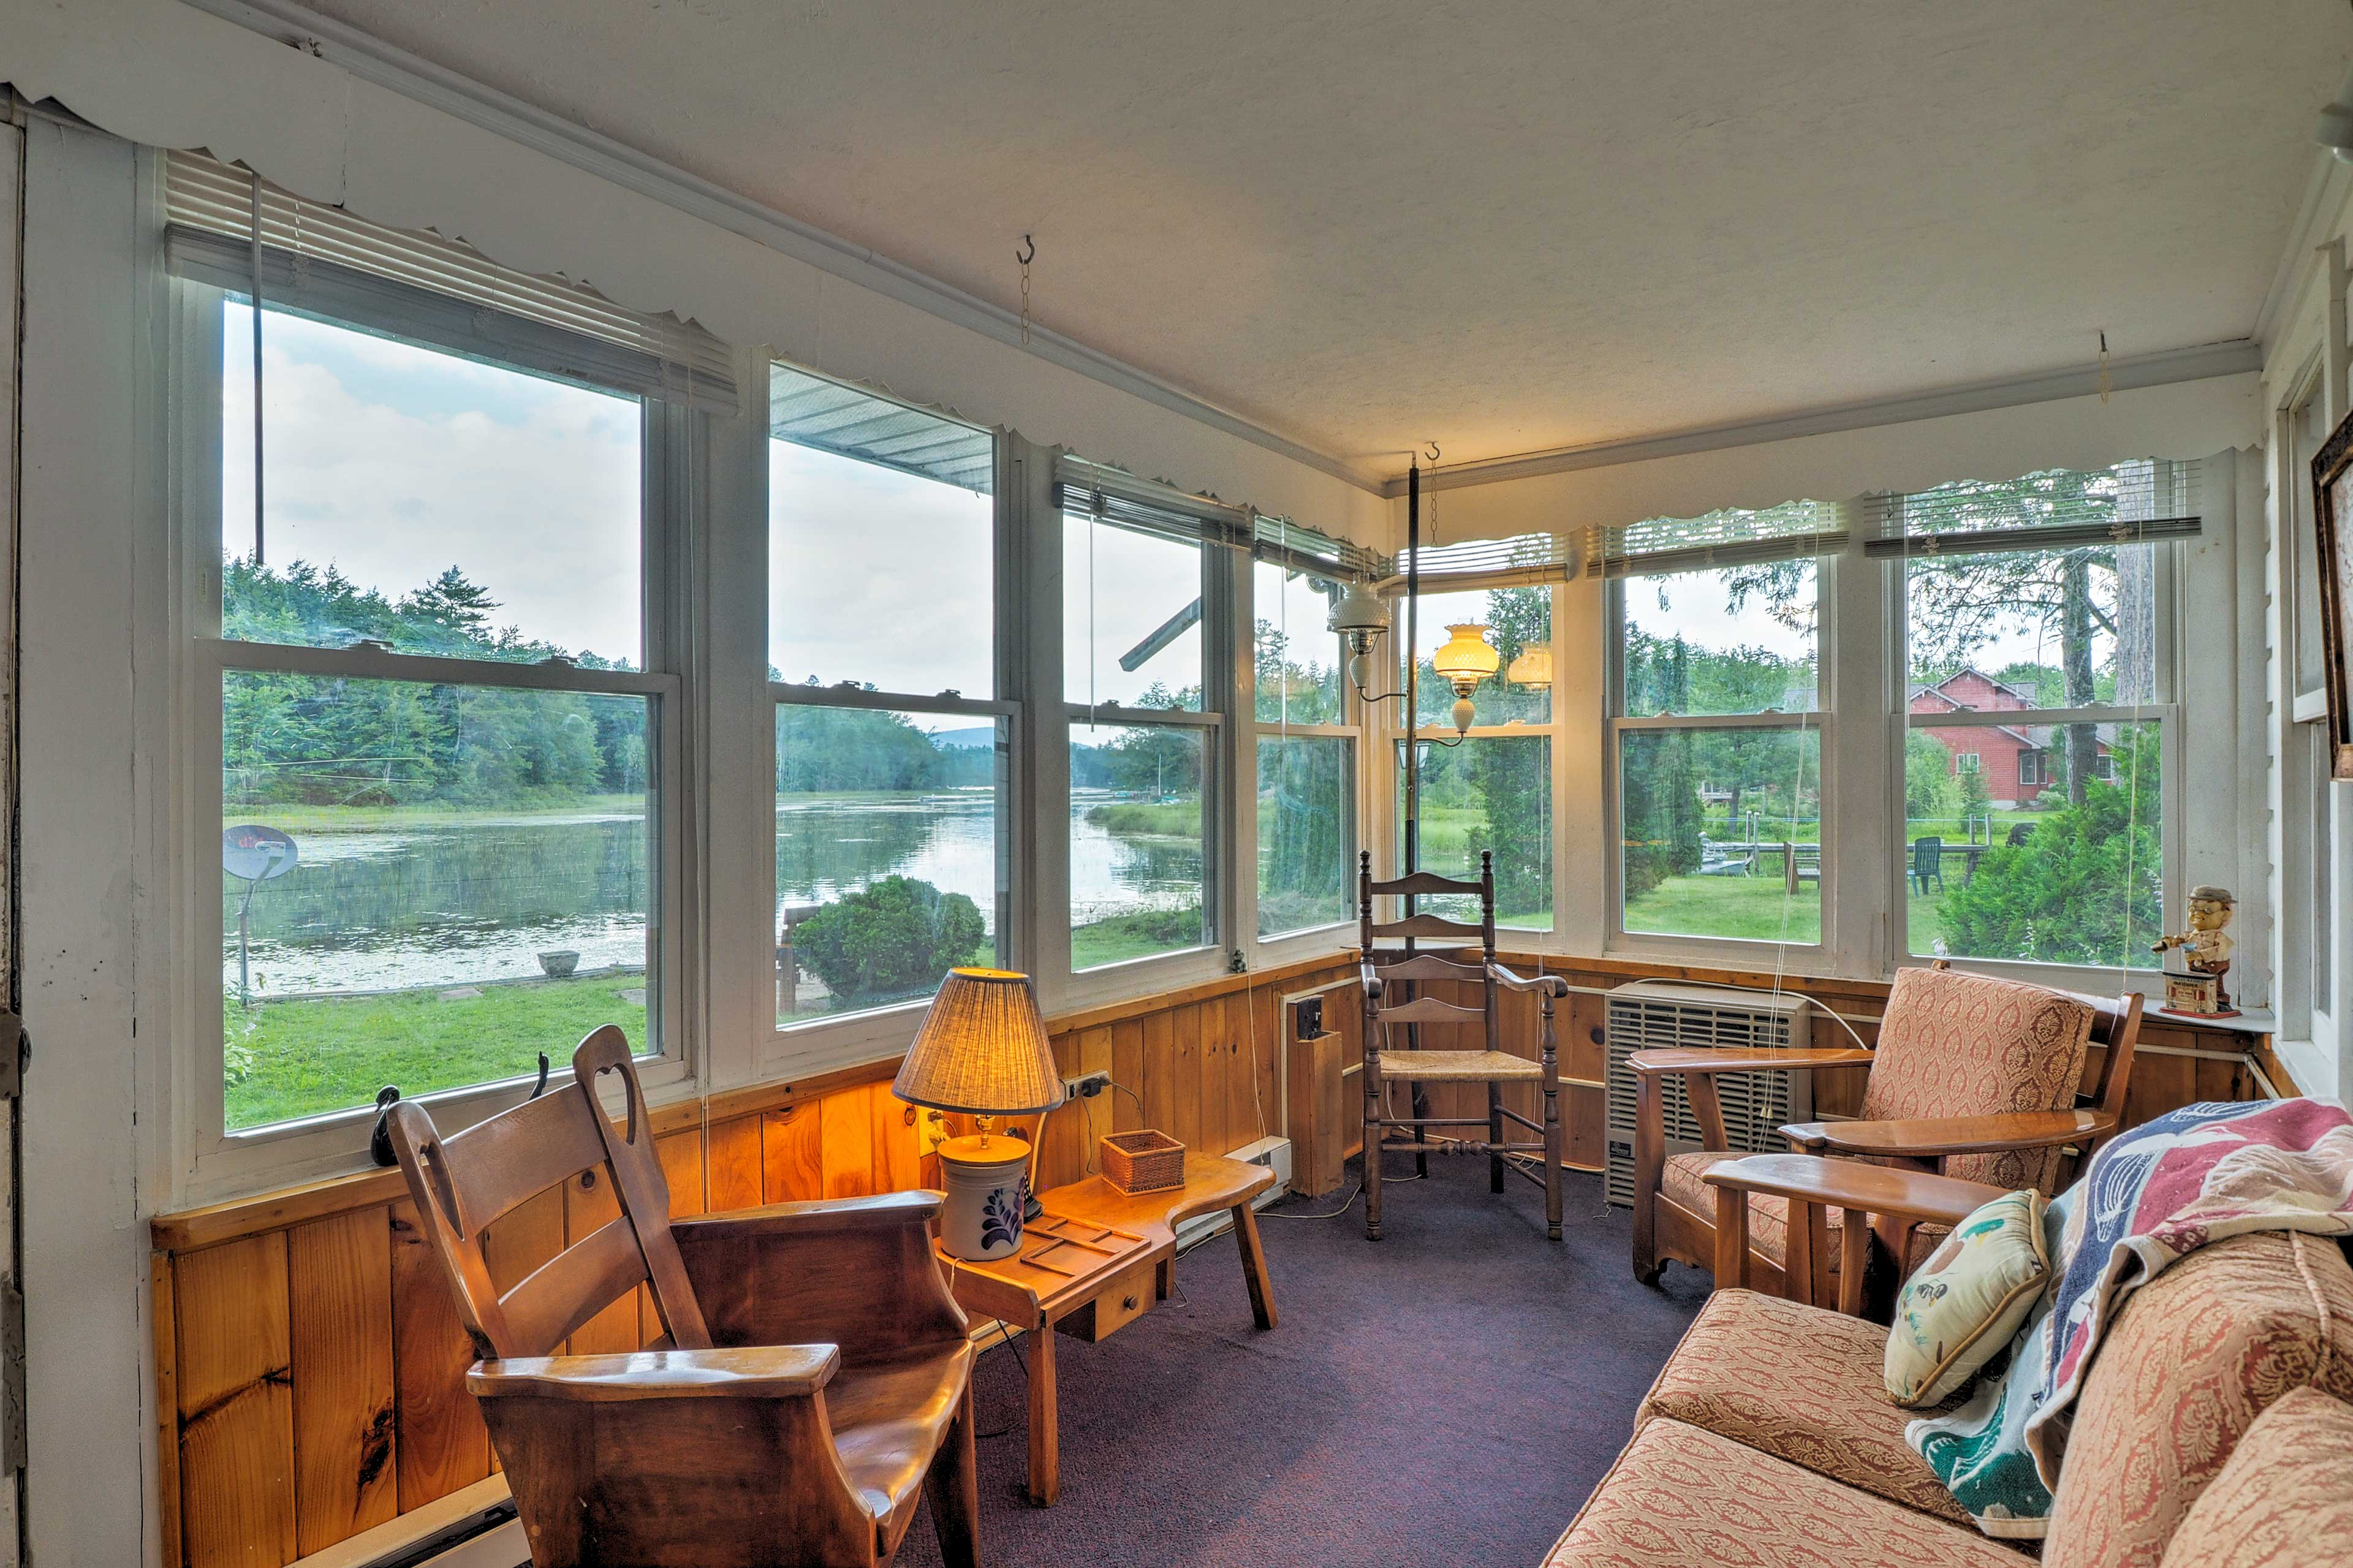 The porch is completely enclosed and has fantastic lake views.